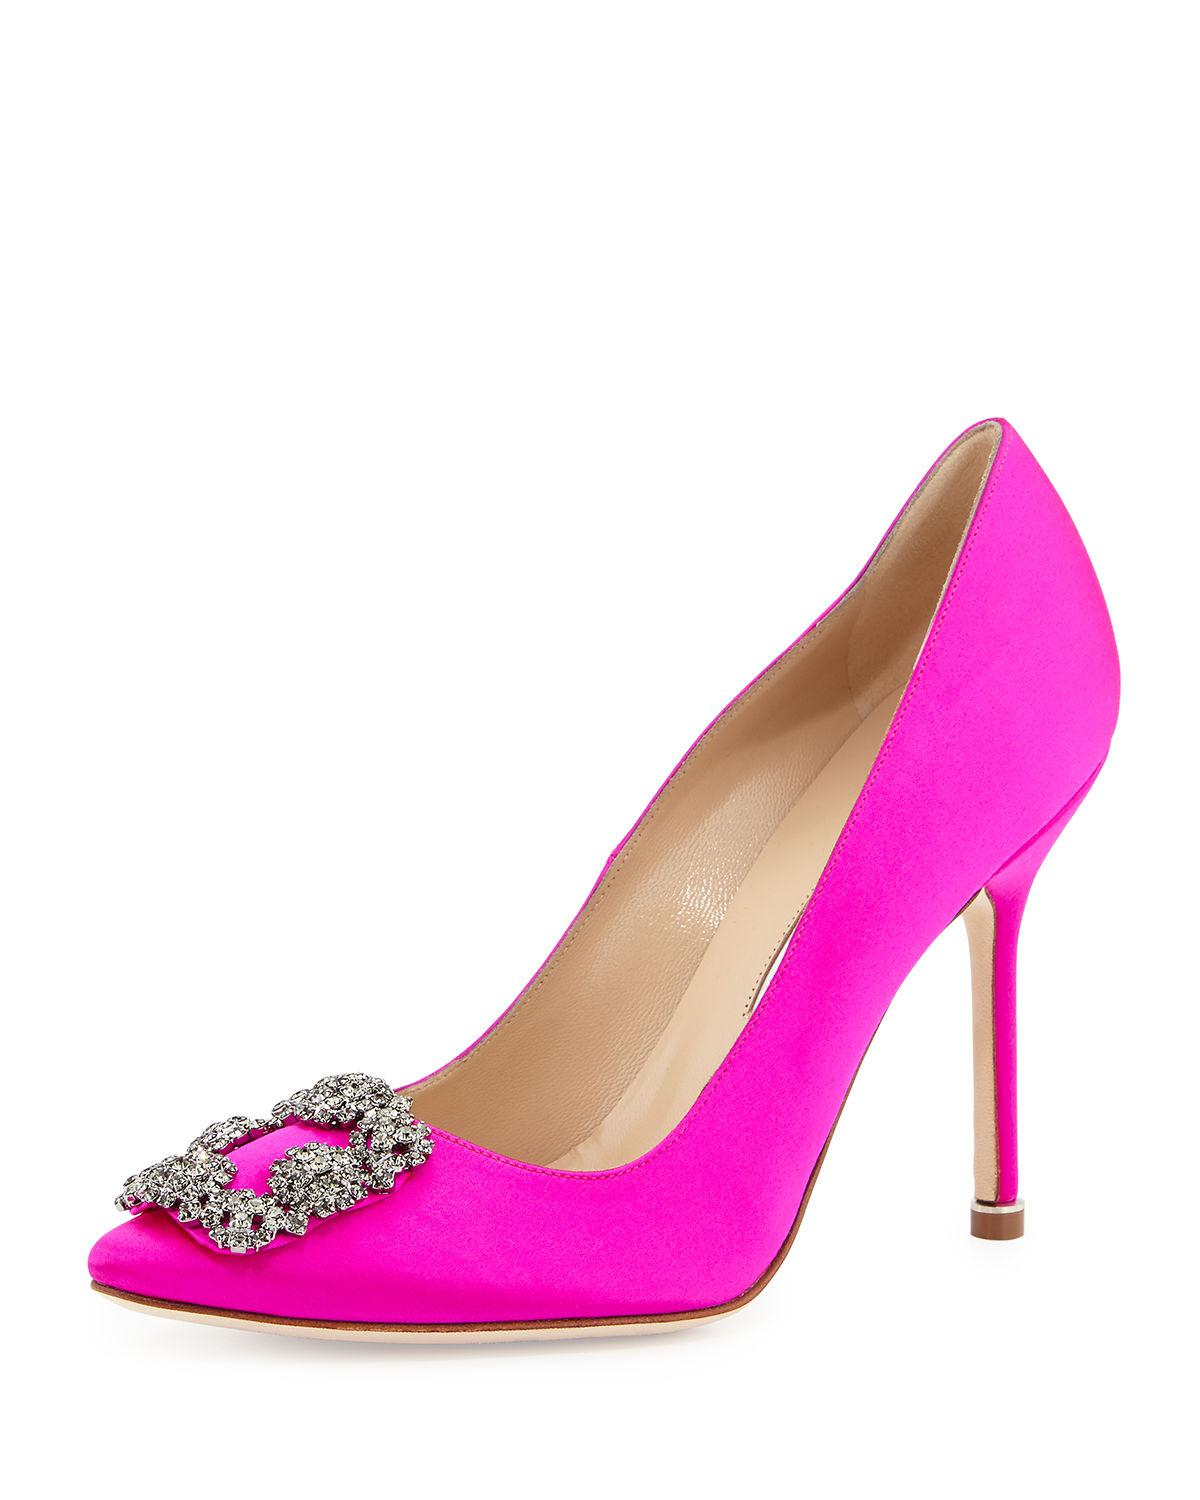 f65da210f984 Manolo Blahnik. Women s Pink Hangisi Crystal-buckle Satin 105mm Pump